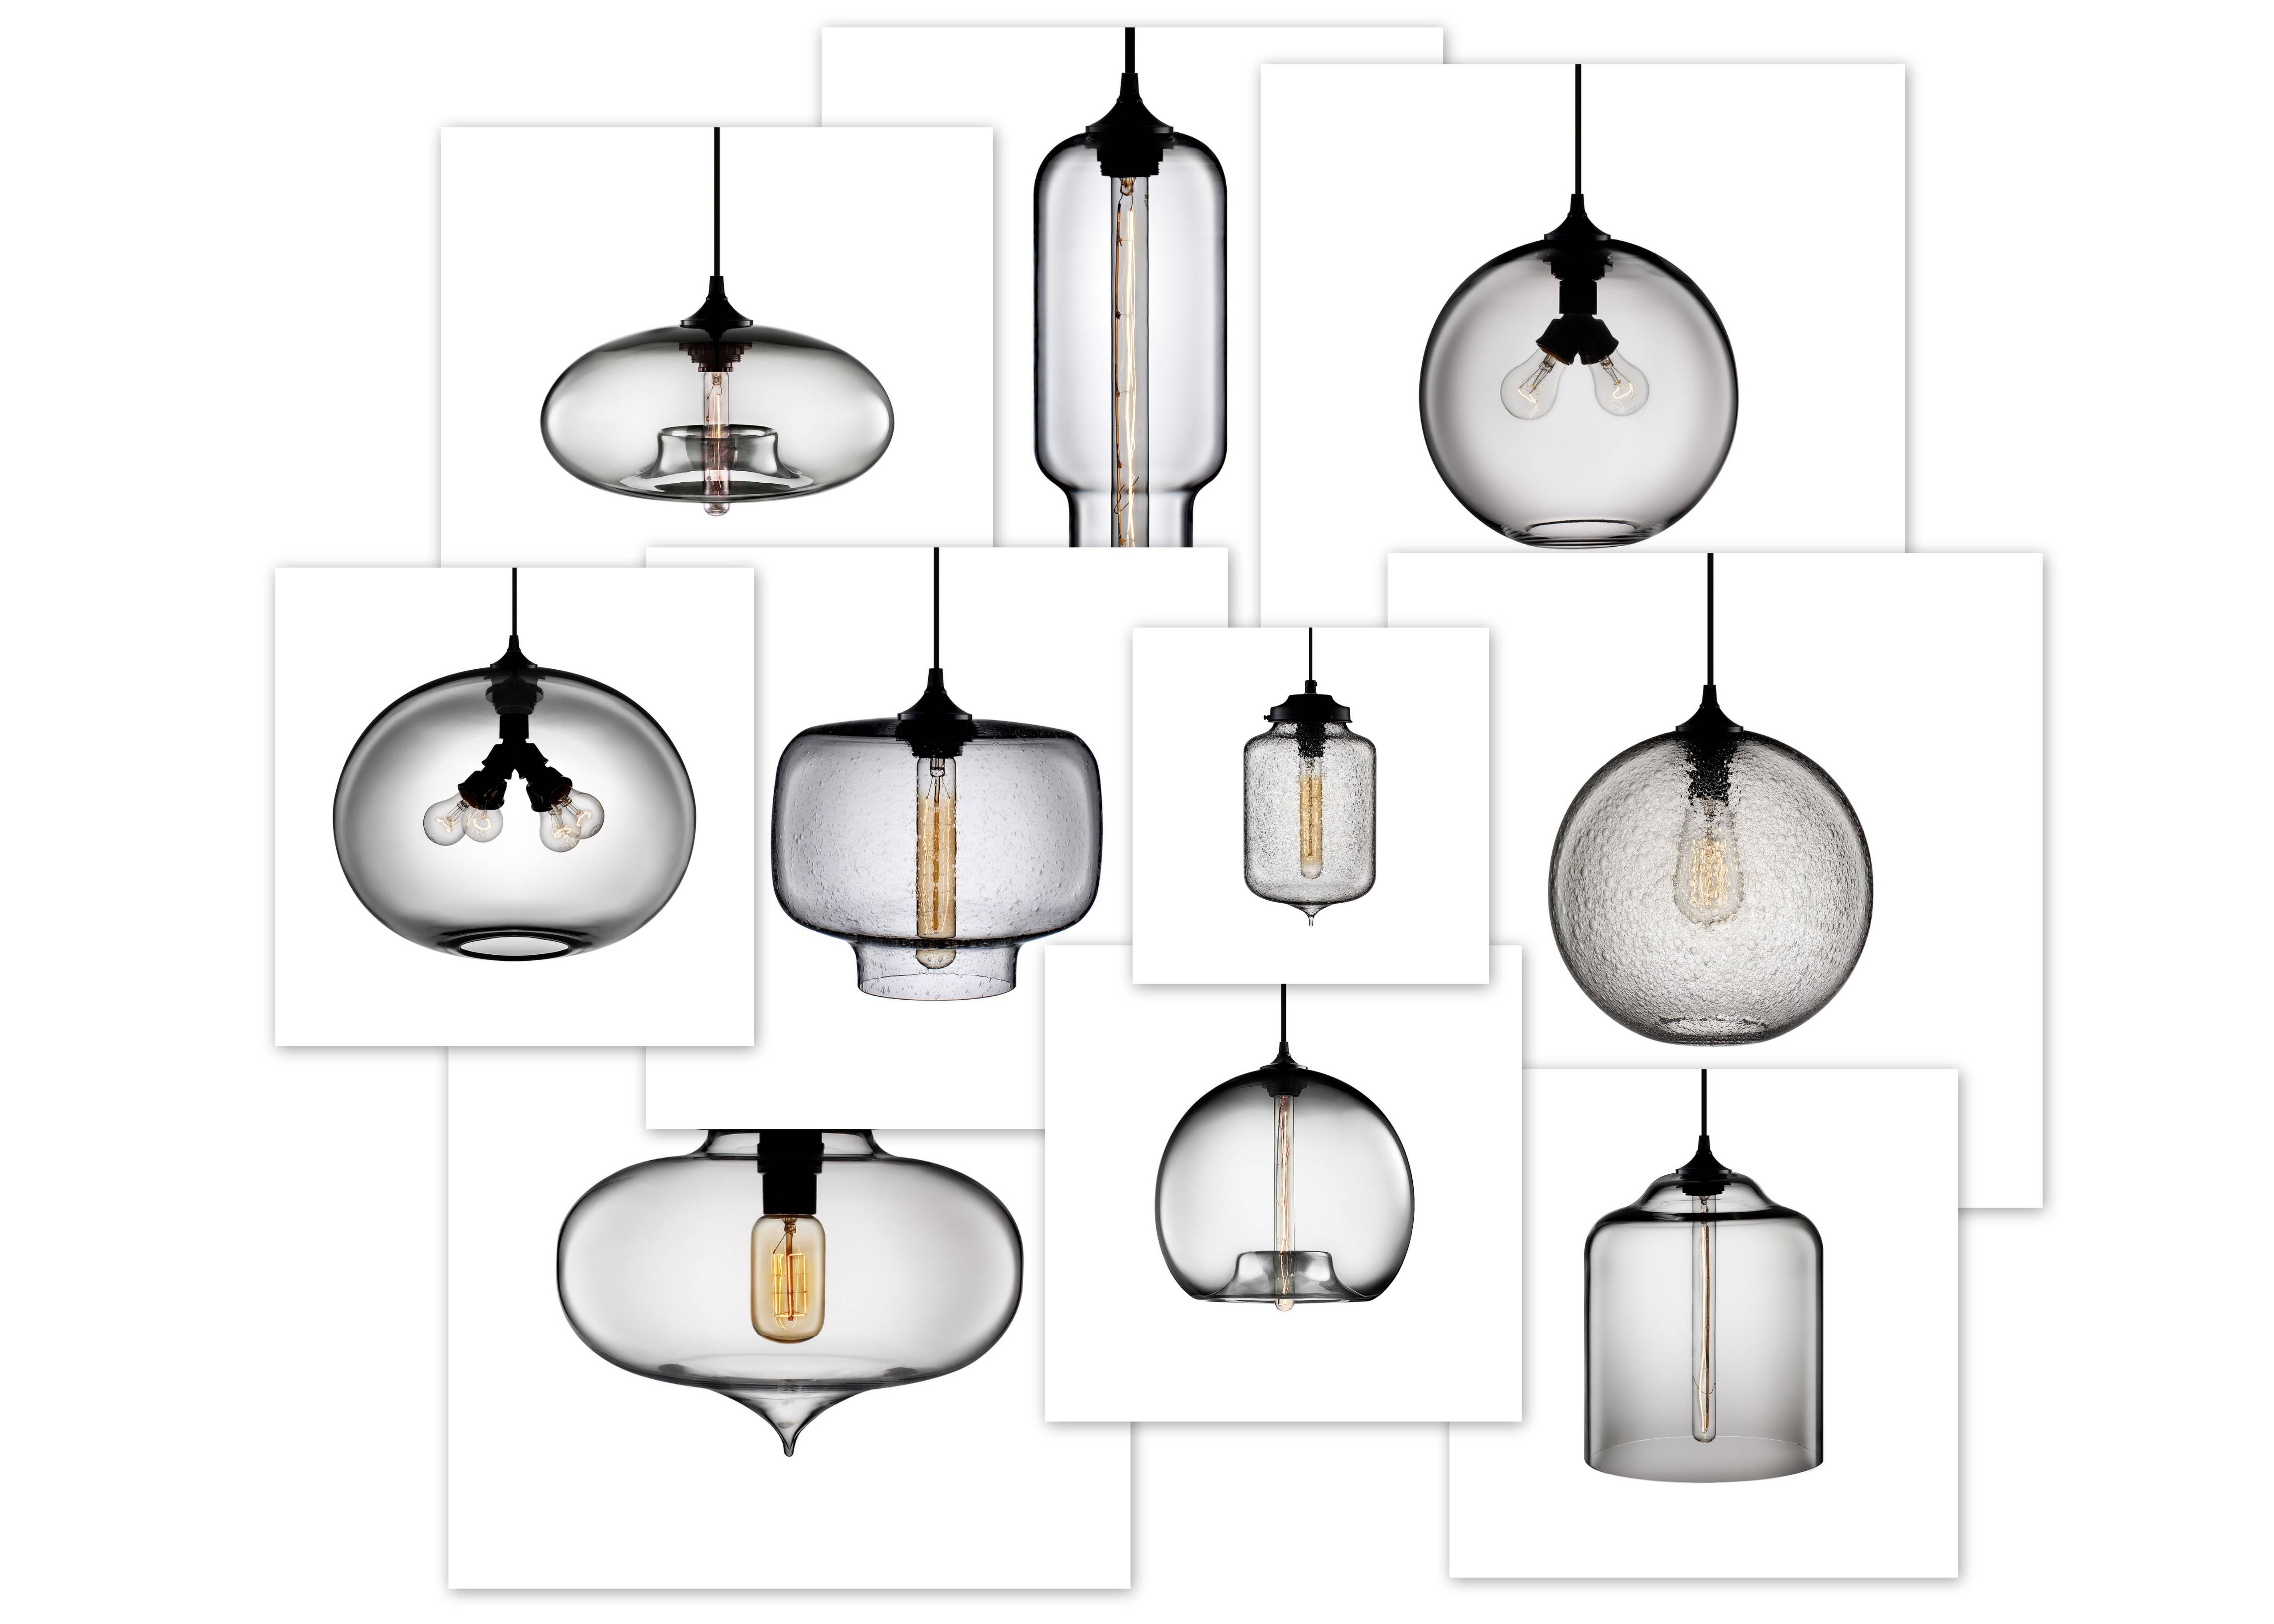 Photos Hgtv ~ Idolza with regard to Blown Glass Kitchen Pendant Lights (Image 15 of 15)